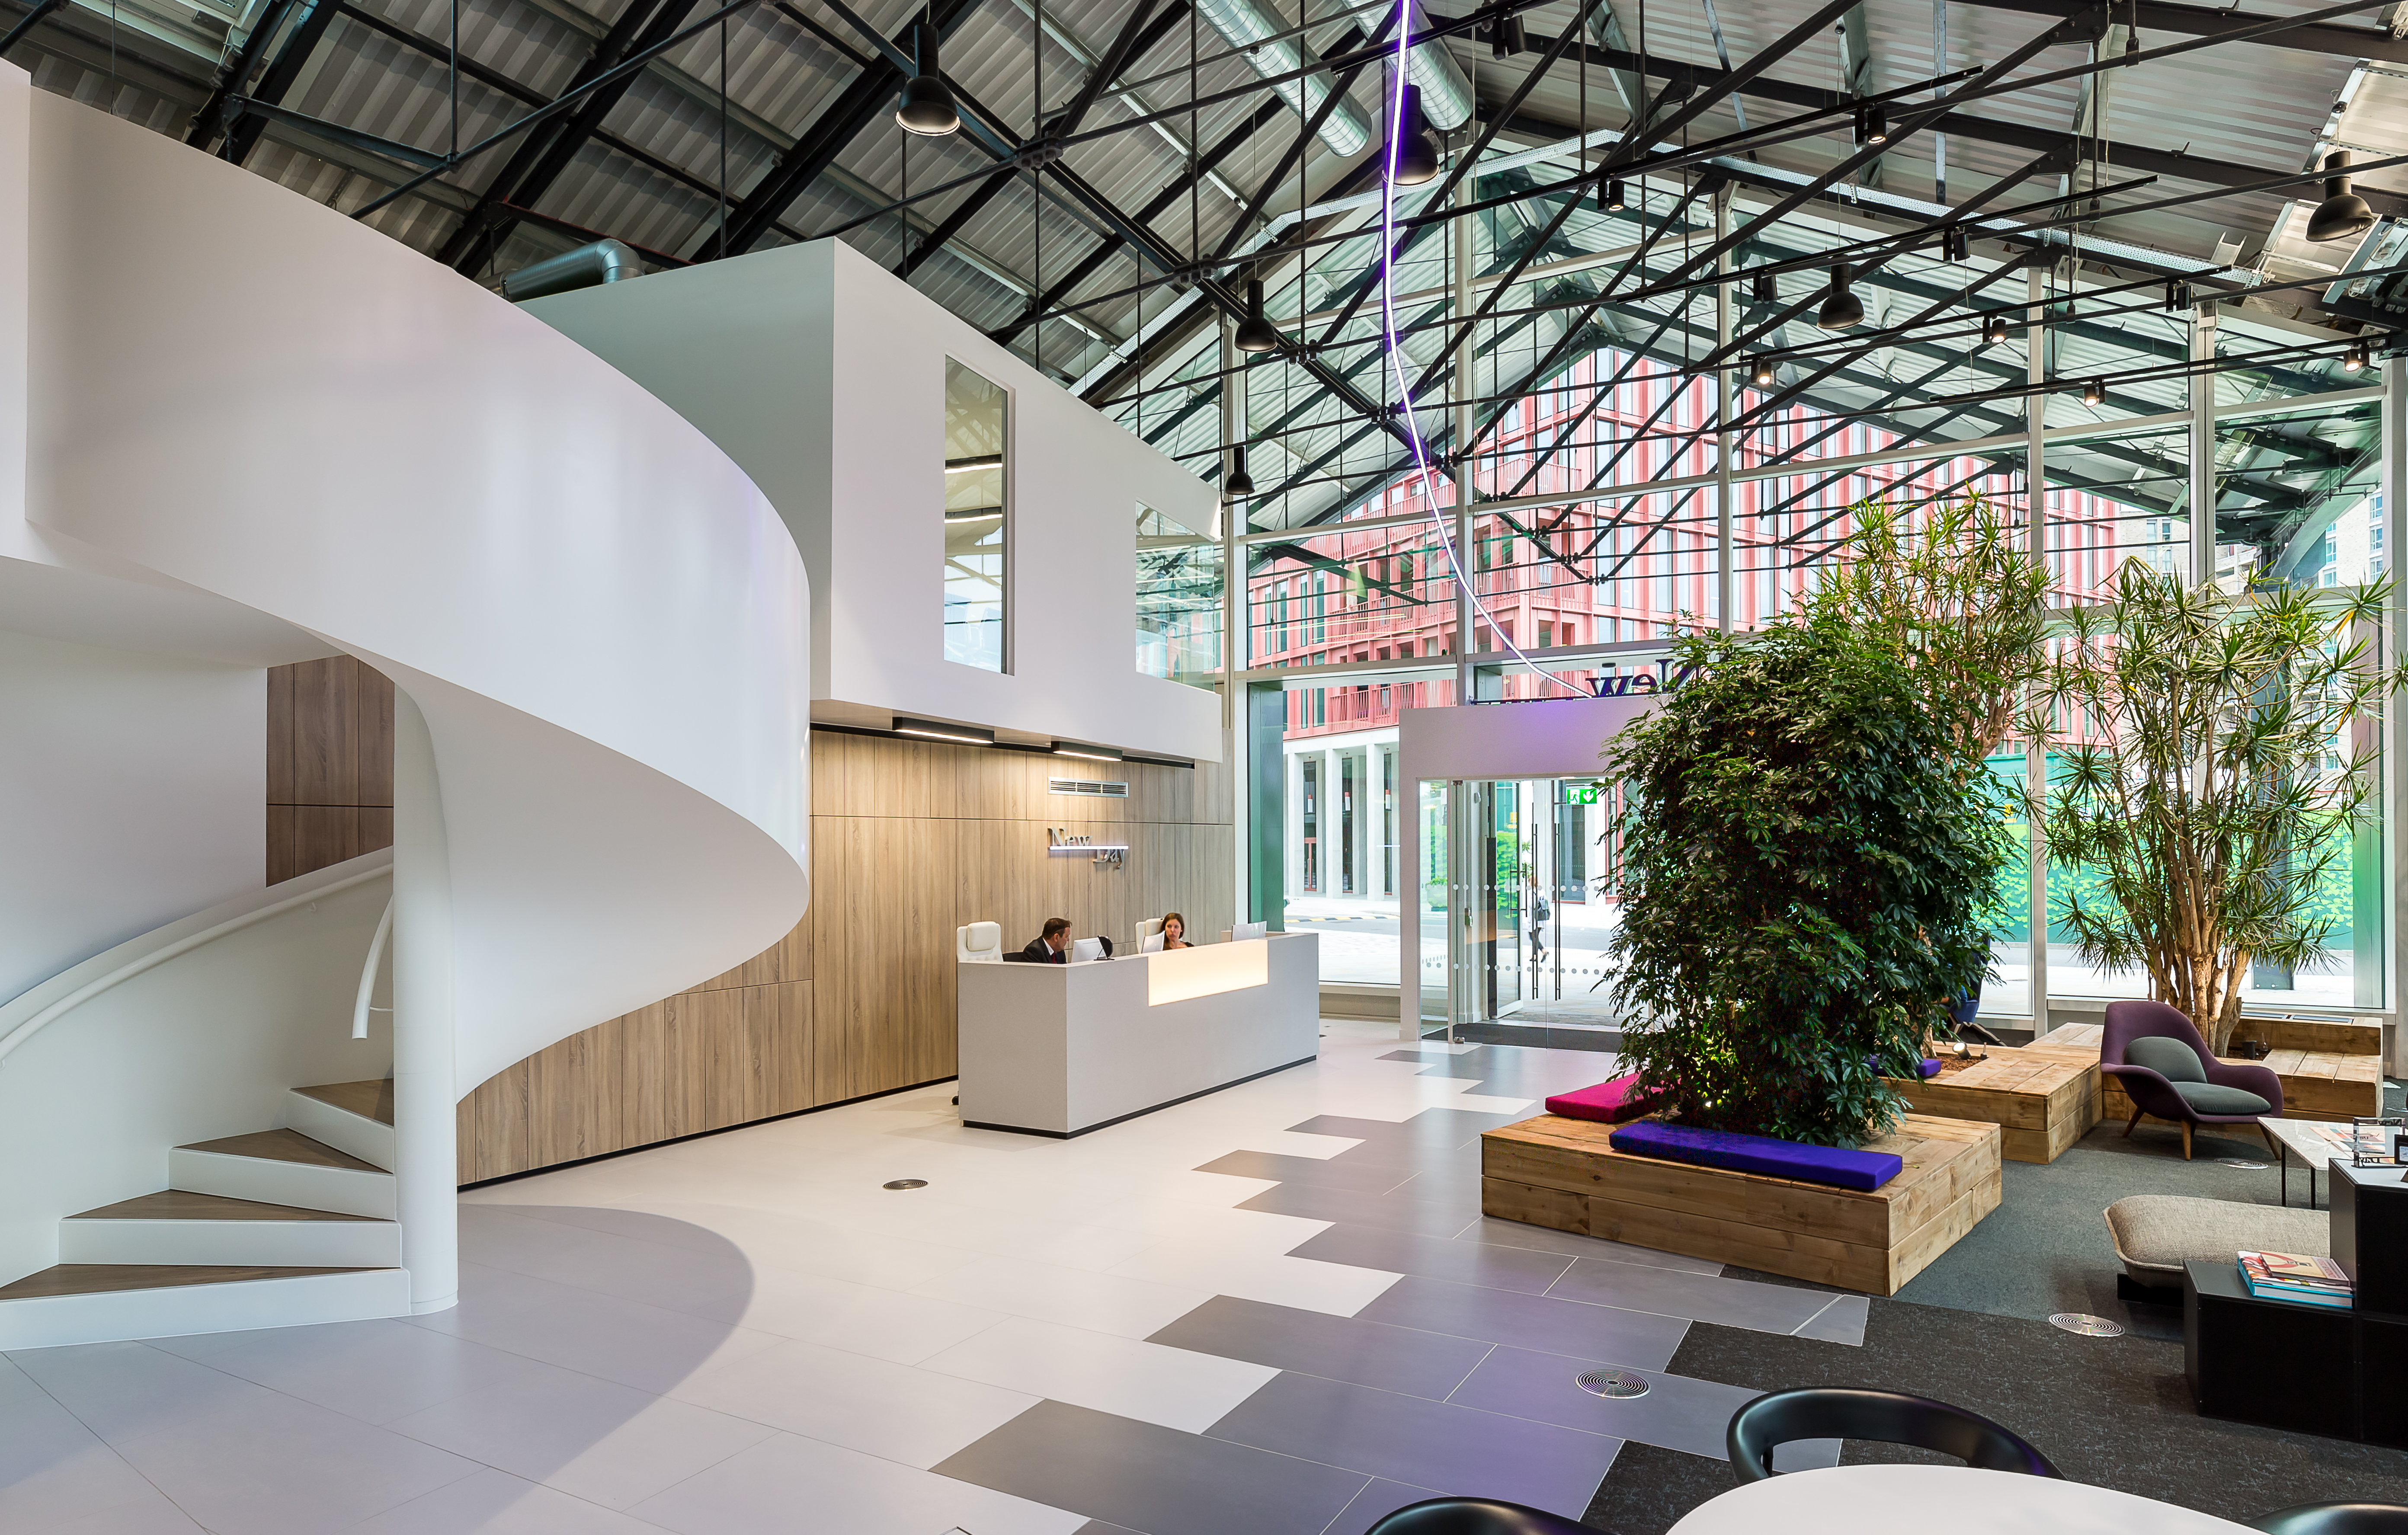 Sbid interior design blog project of the week newday - Interior design office space ...